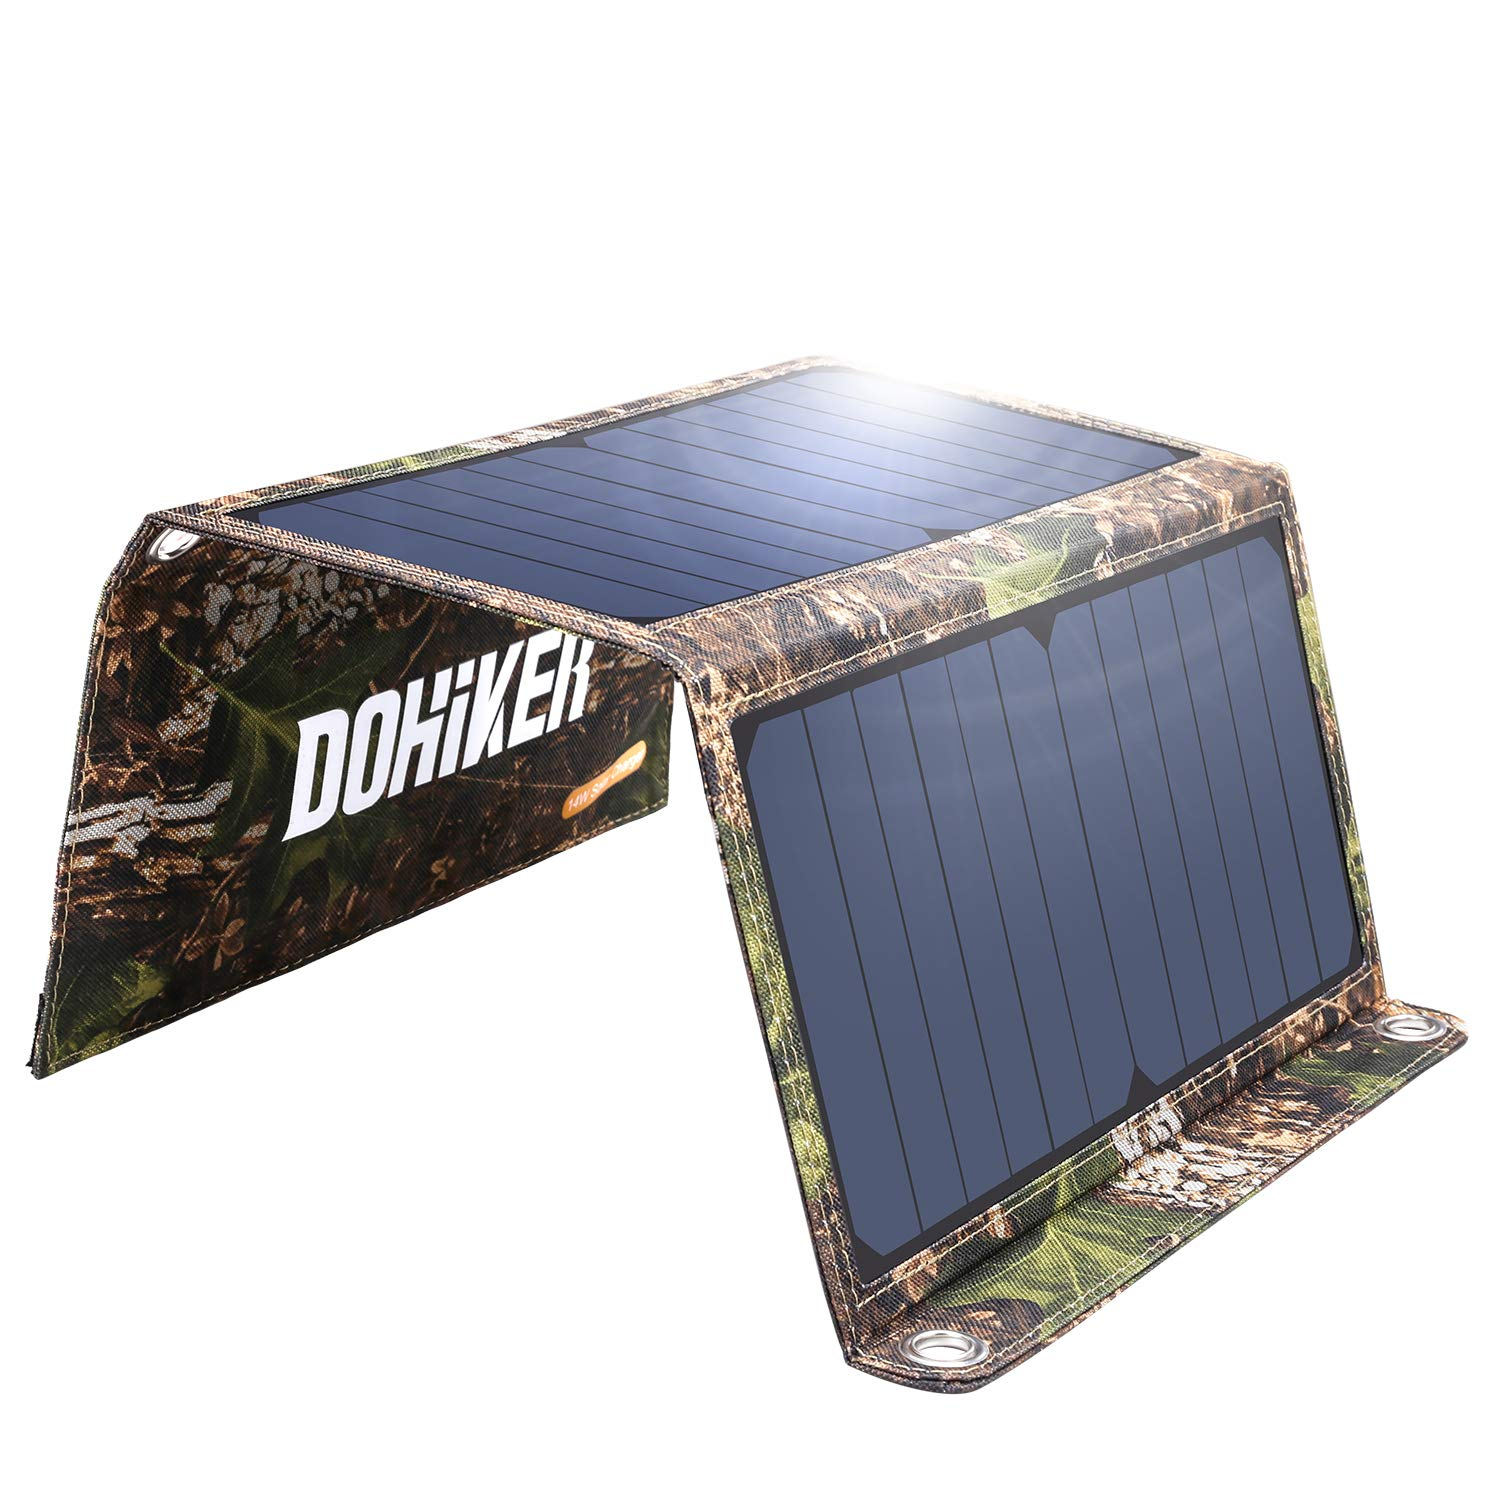 Portable Foldable Solar Panel Charger, 14W Solar Phone Charger with 3 USB Ports,Durable & Waterproof Solar Charger for Cell Phone, PowerBank, and Electronic Devices, Great for Camping, Hiking (14W) by Dohiker